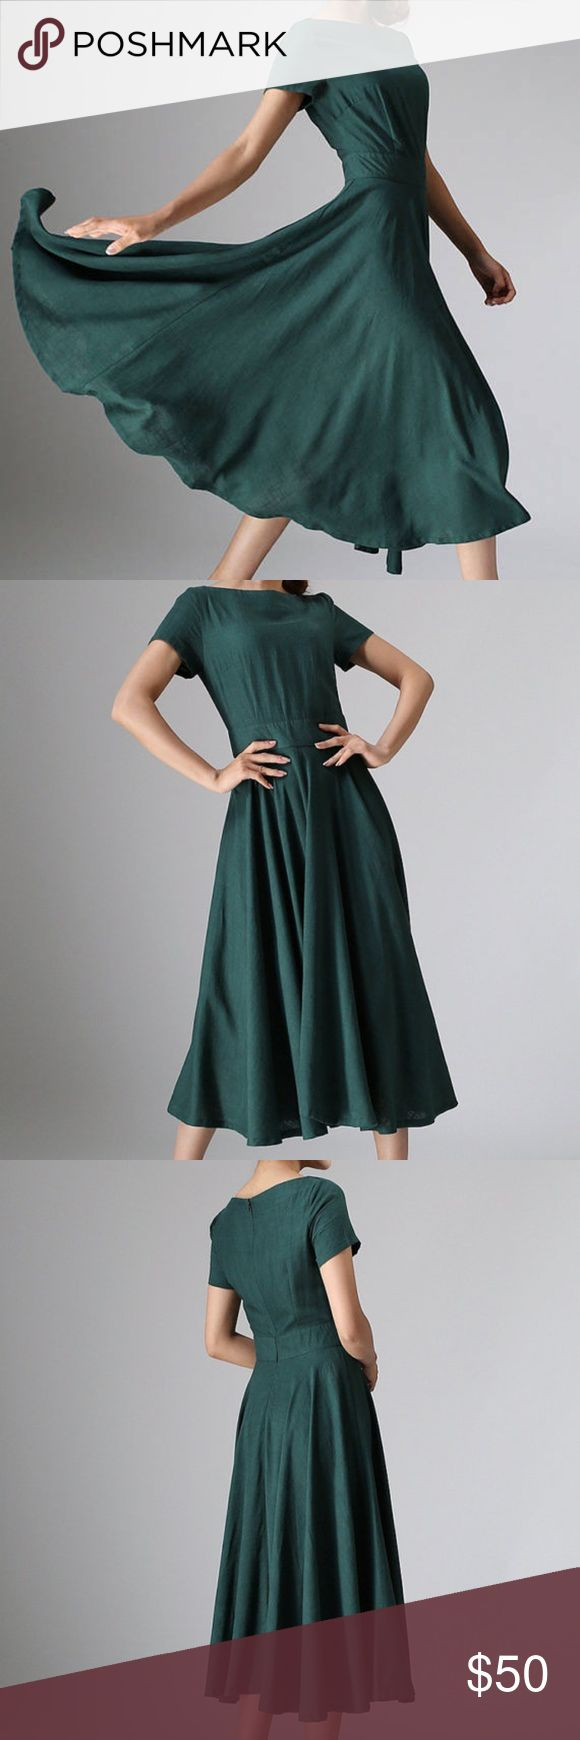 Midi dress - Green Linen -Green linen material -forest, hunter green color -Shallow boat neckline  -Short sleeves -Fitted waist   -Concealed Back zip closure  -Flare skirt, soft pleated -115 cms in length, midi dress Wash by hand or machine with cold water Dresses Midi